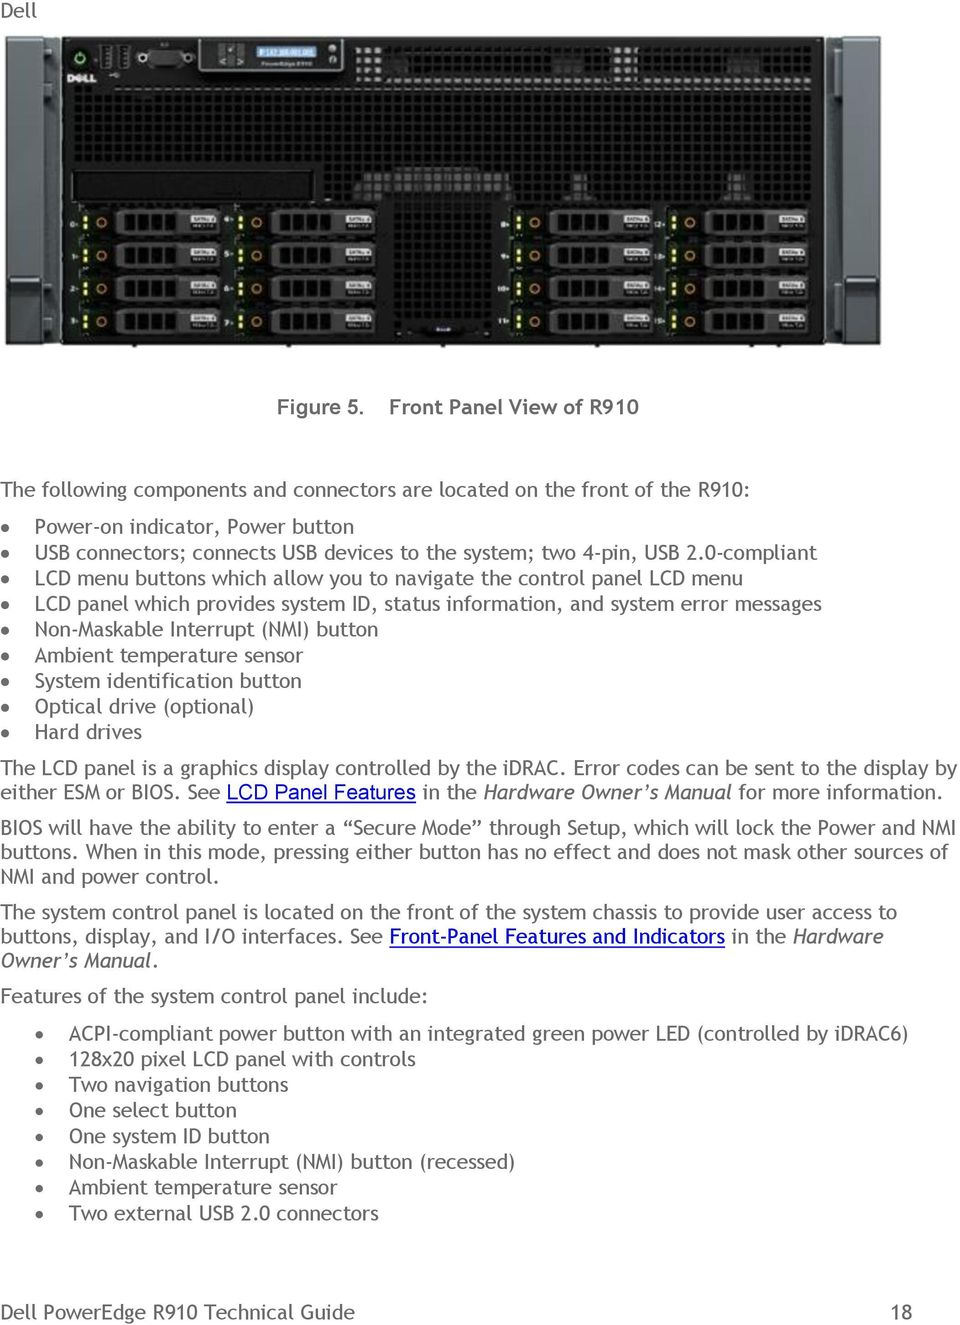 Dell PowerEdge R910  Technical Guide - PDF